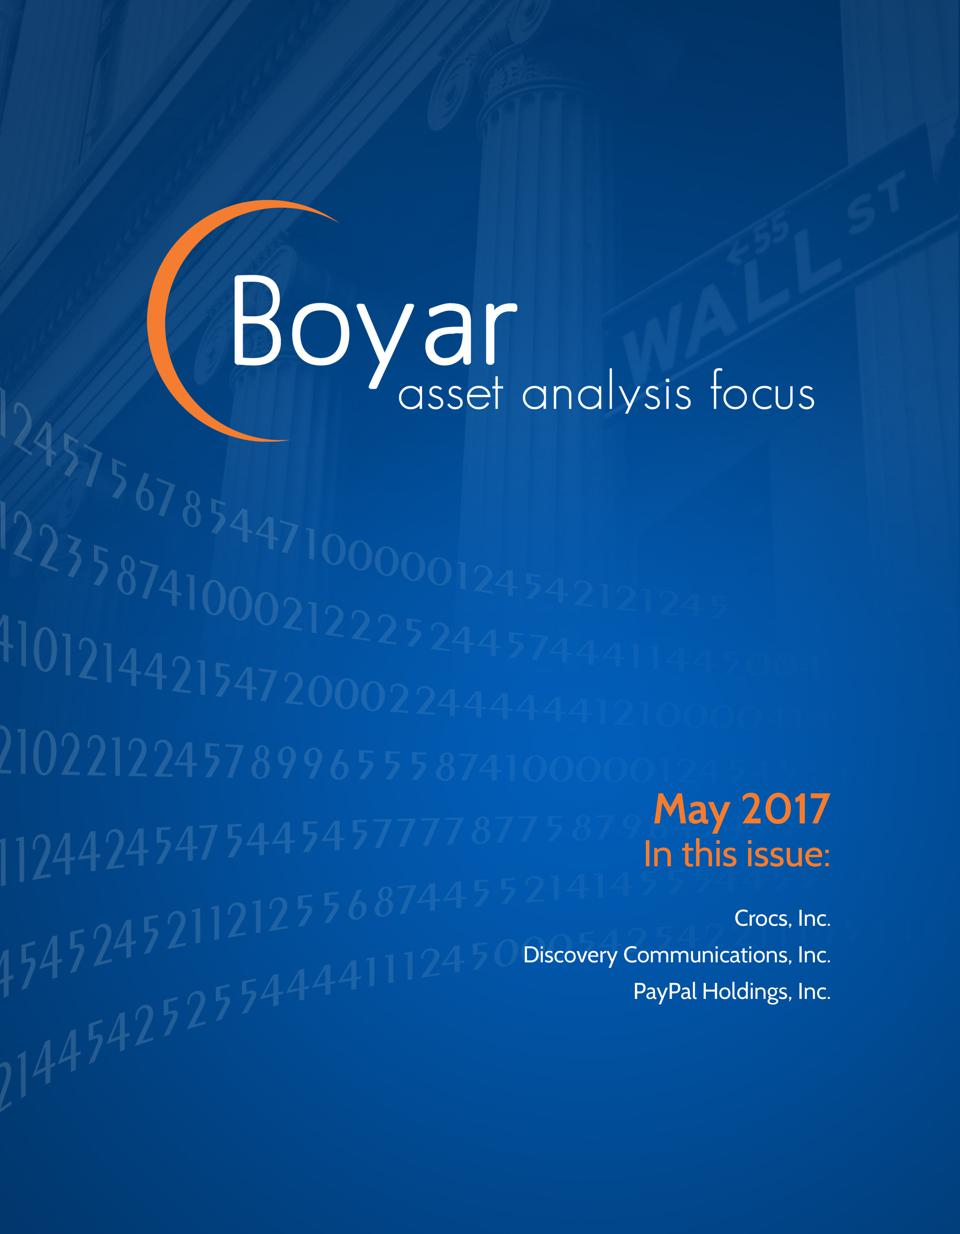 May 2017 Boyar Research Report Featuring PayPal